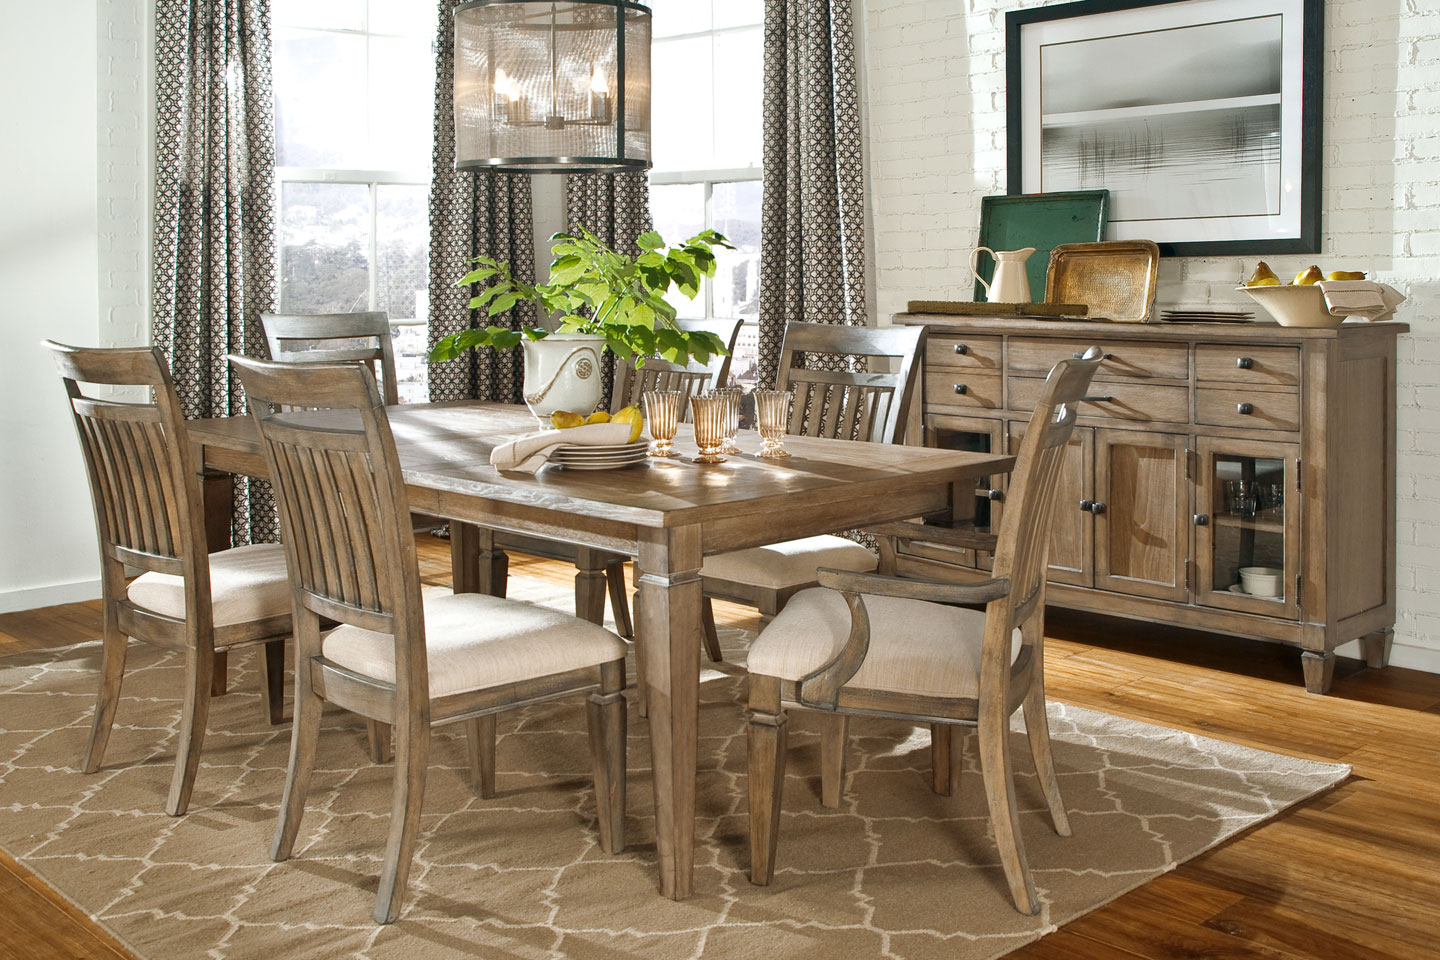 Dining Room Furniture Rustic Gavin Rustic Formal Dining Room Set Fine Dining Furniture